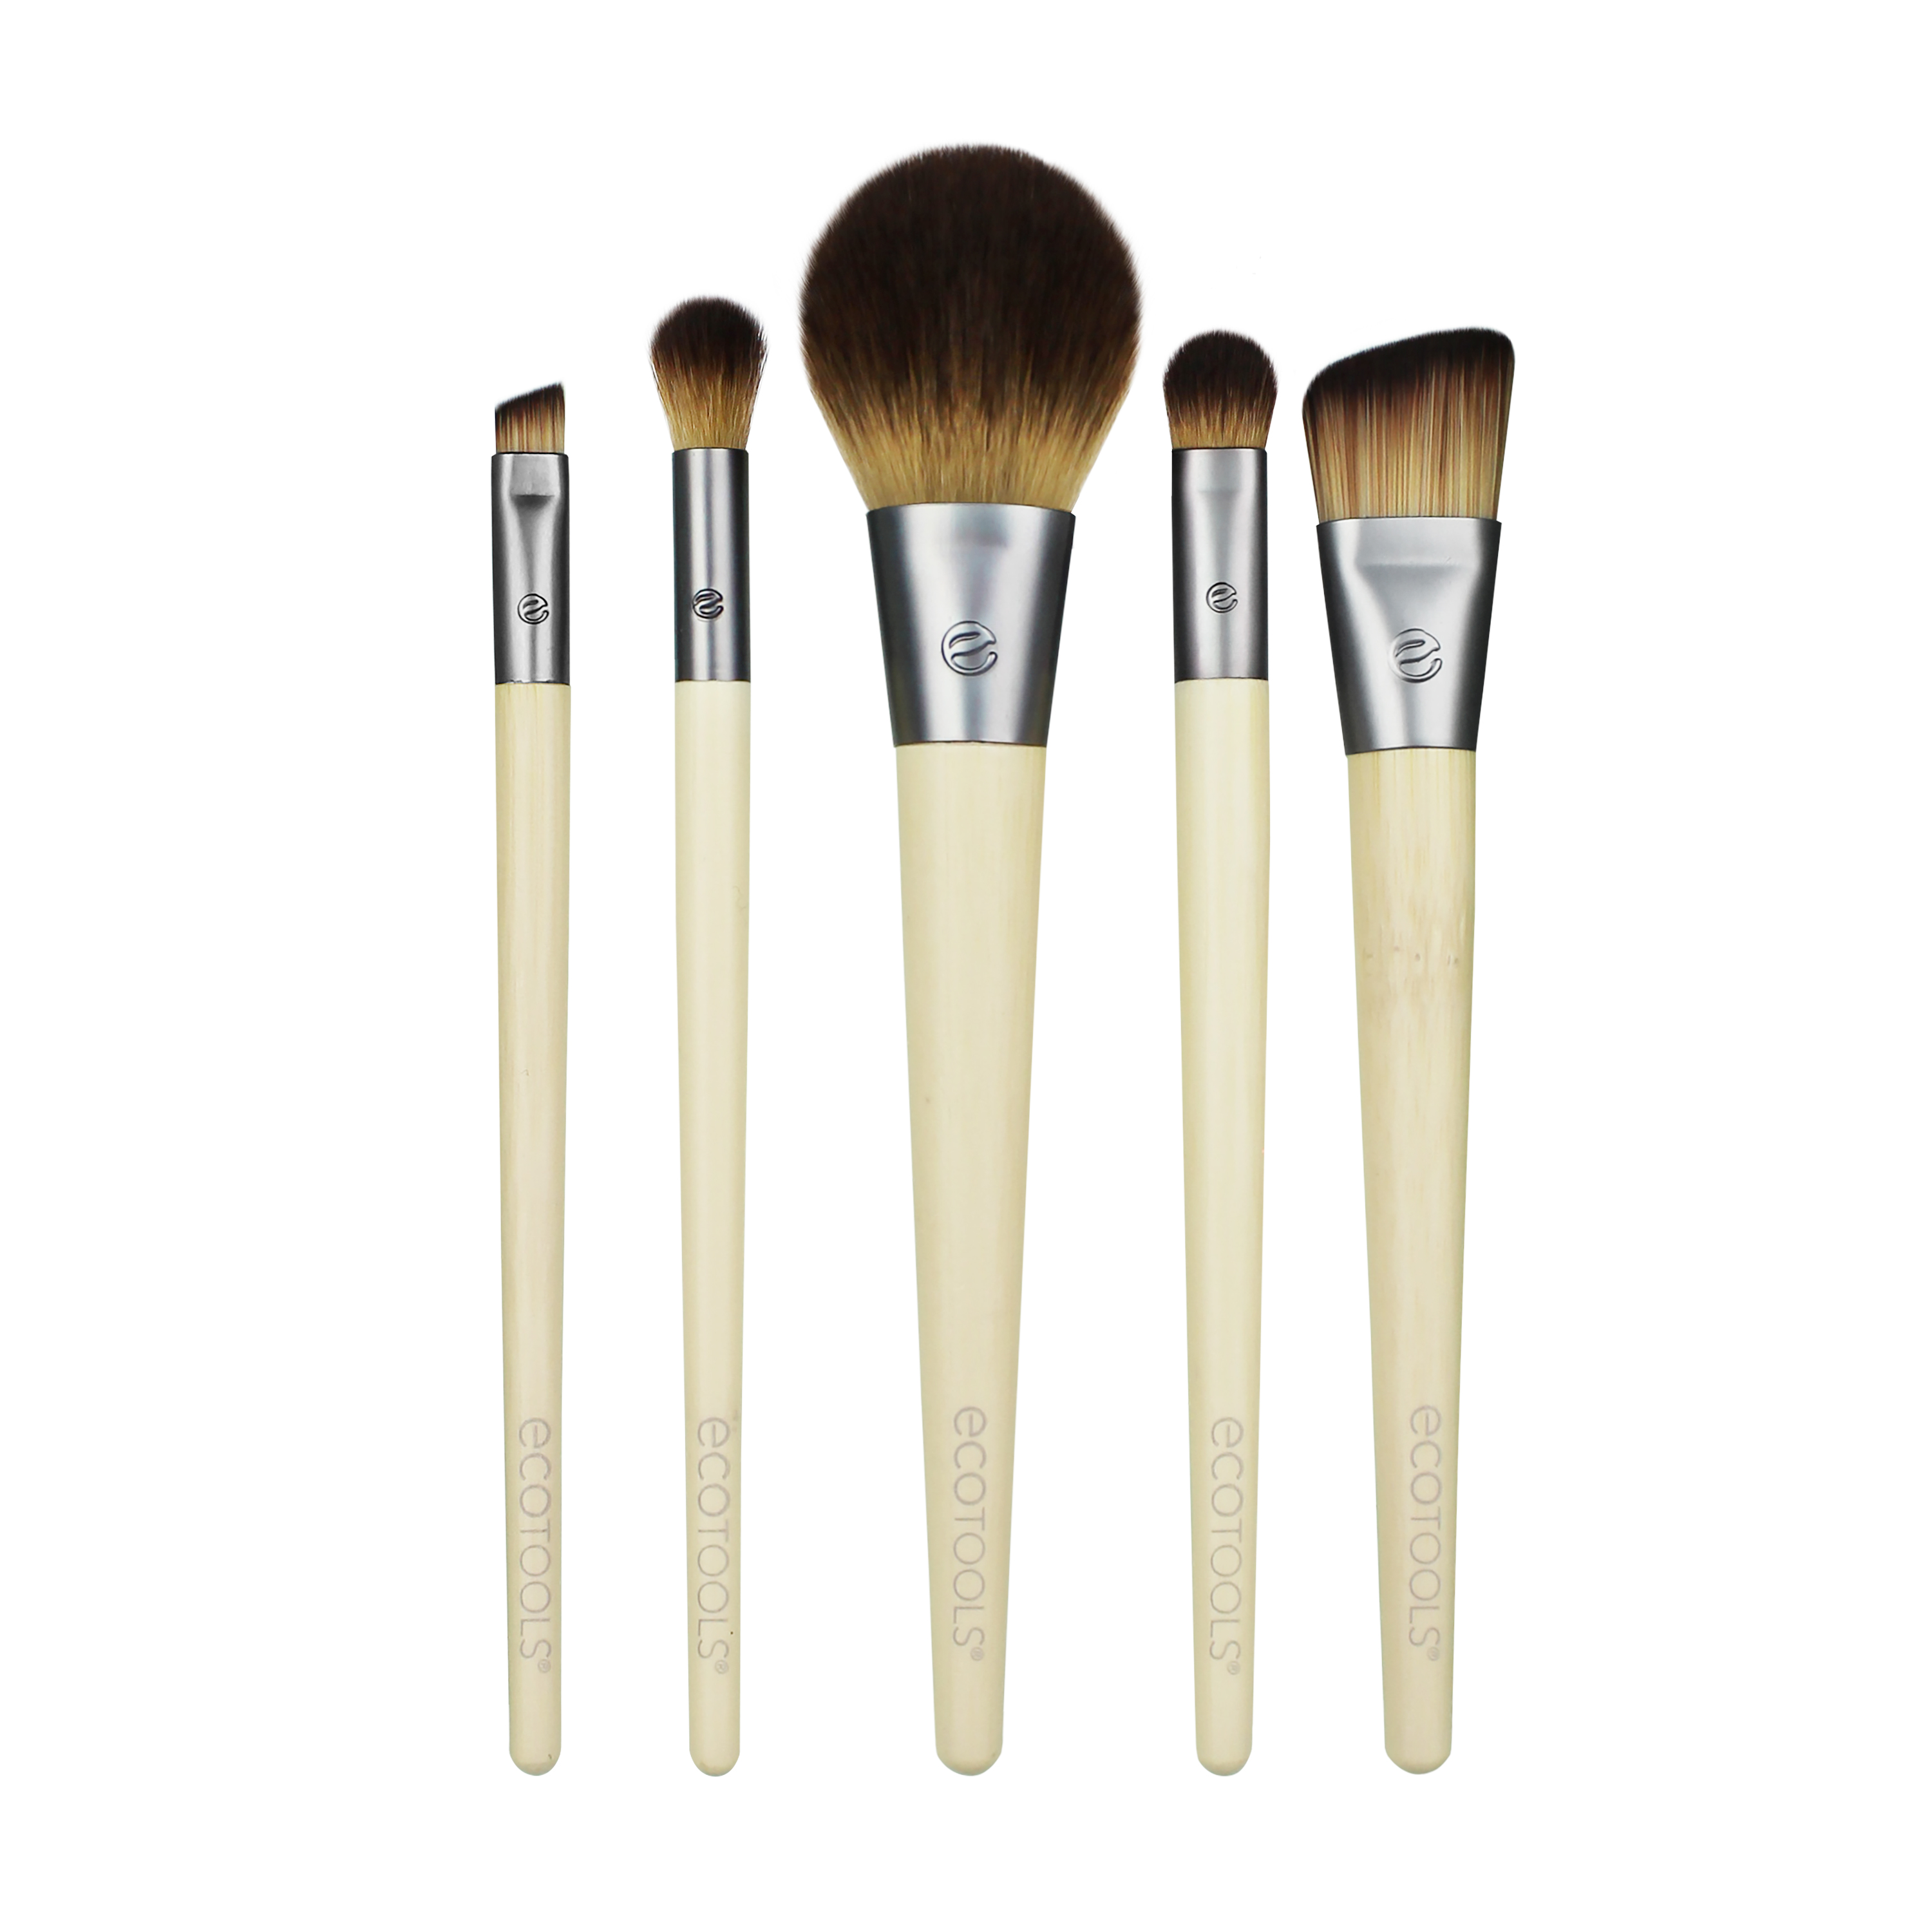 Ecotools Start The Day Beautifully Kit Makeup Brush Set